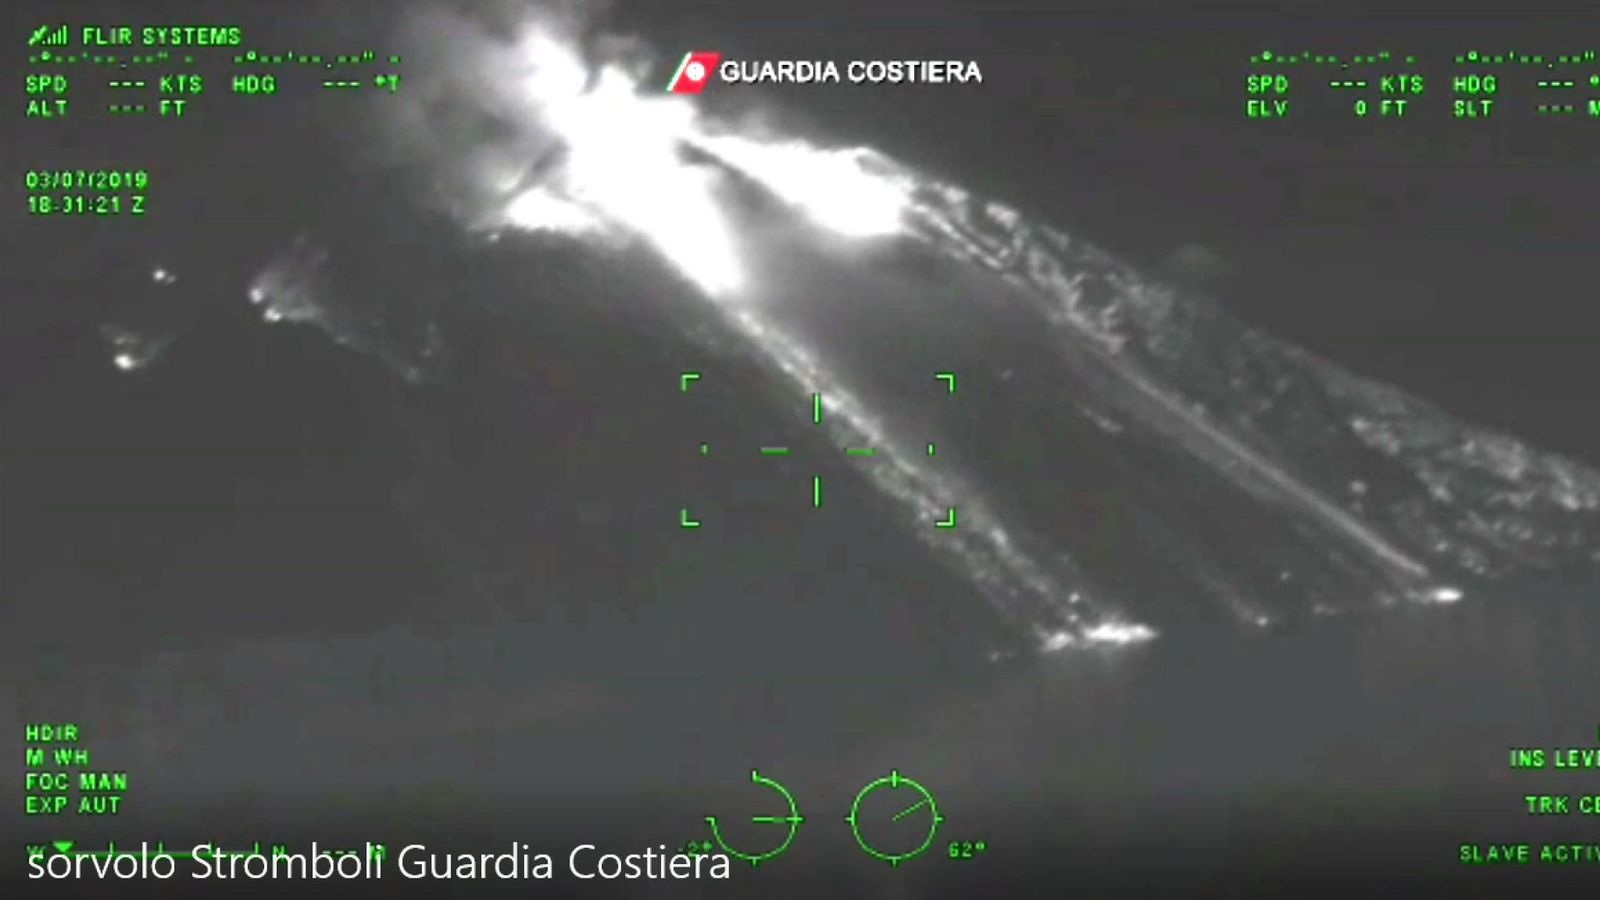 Stromboli - IR photo 03.04.2019 by the Guardia Costiera / skynews-italy